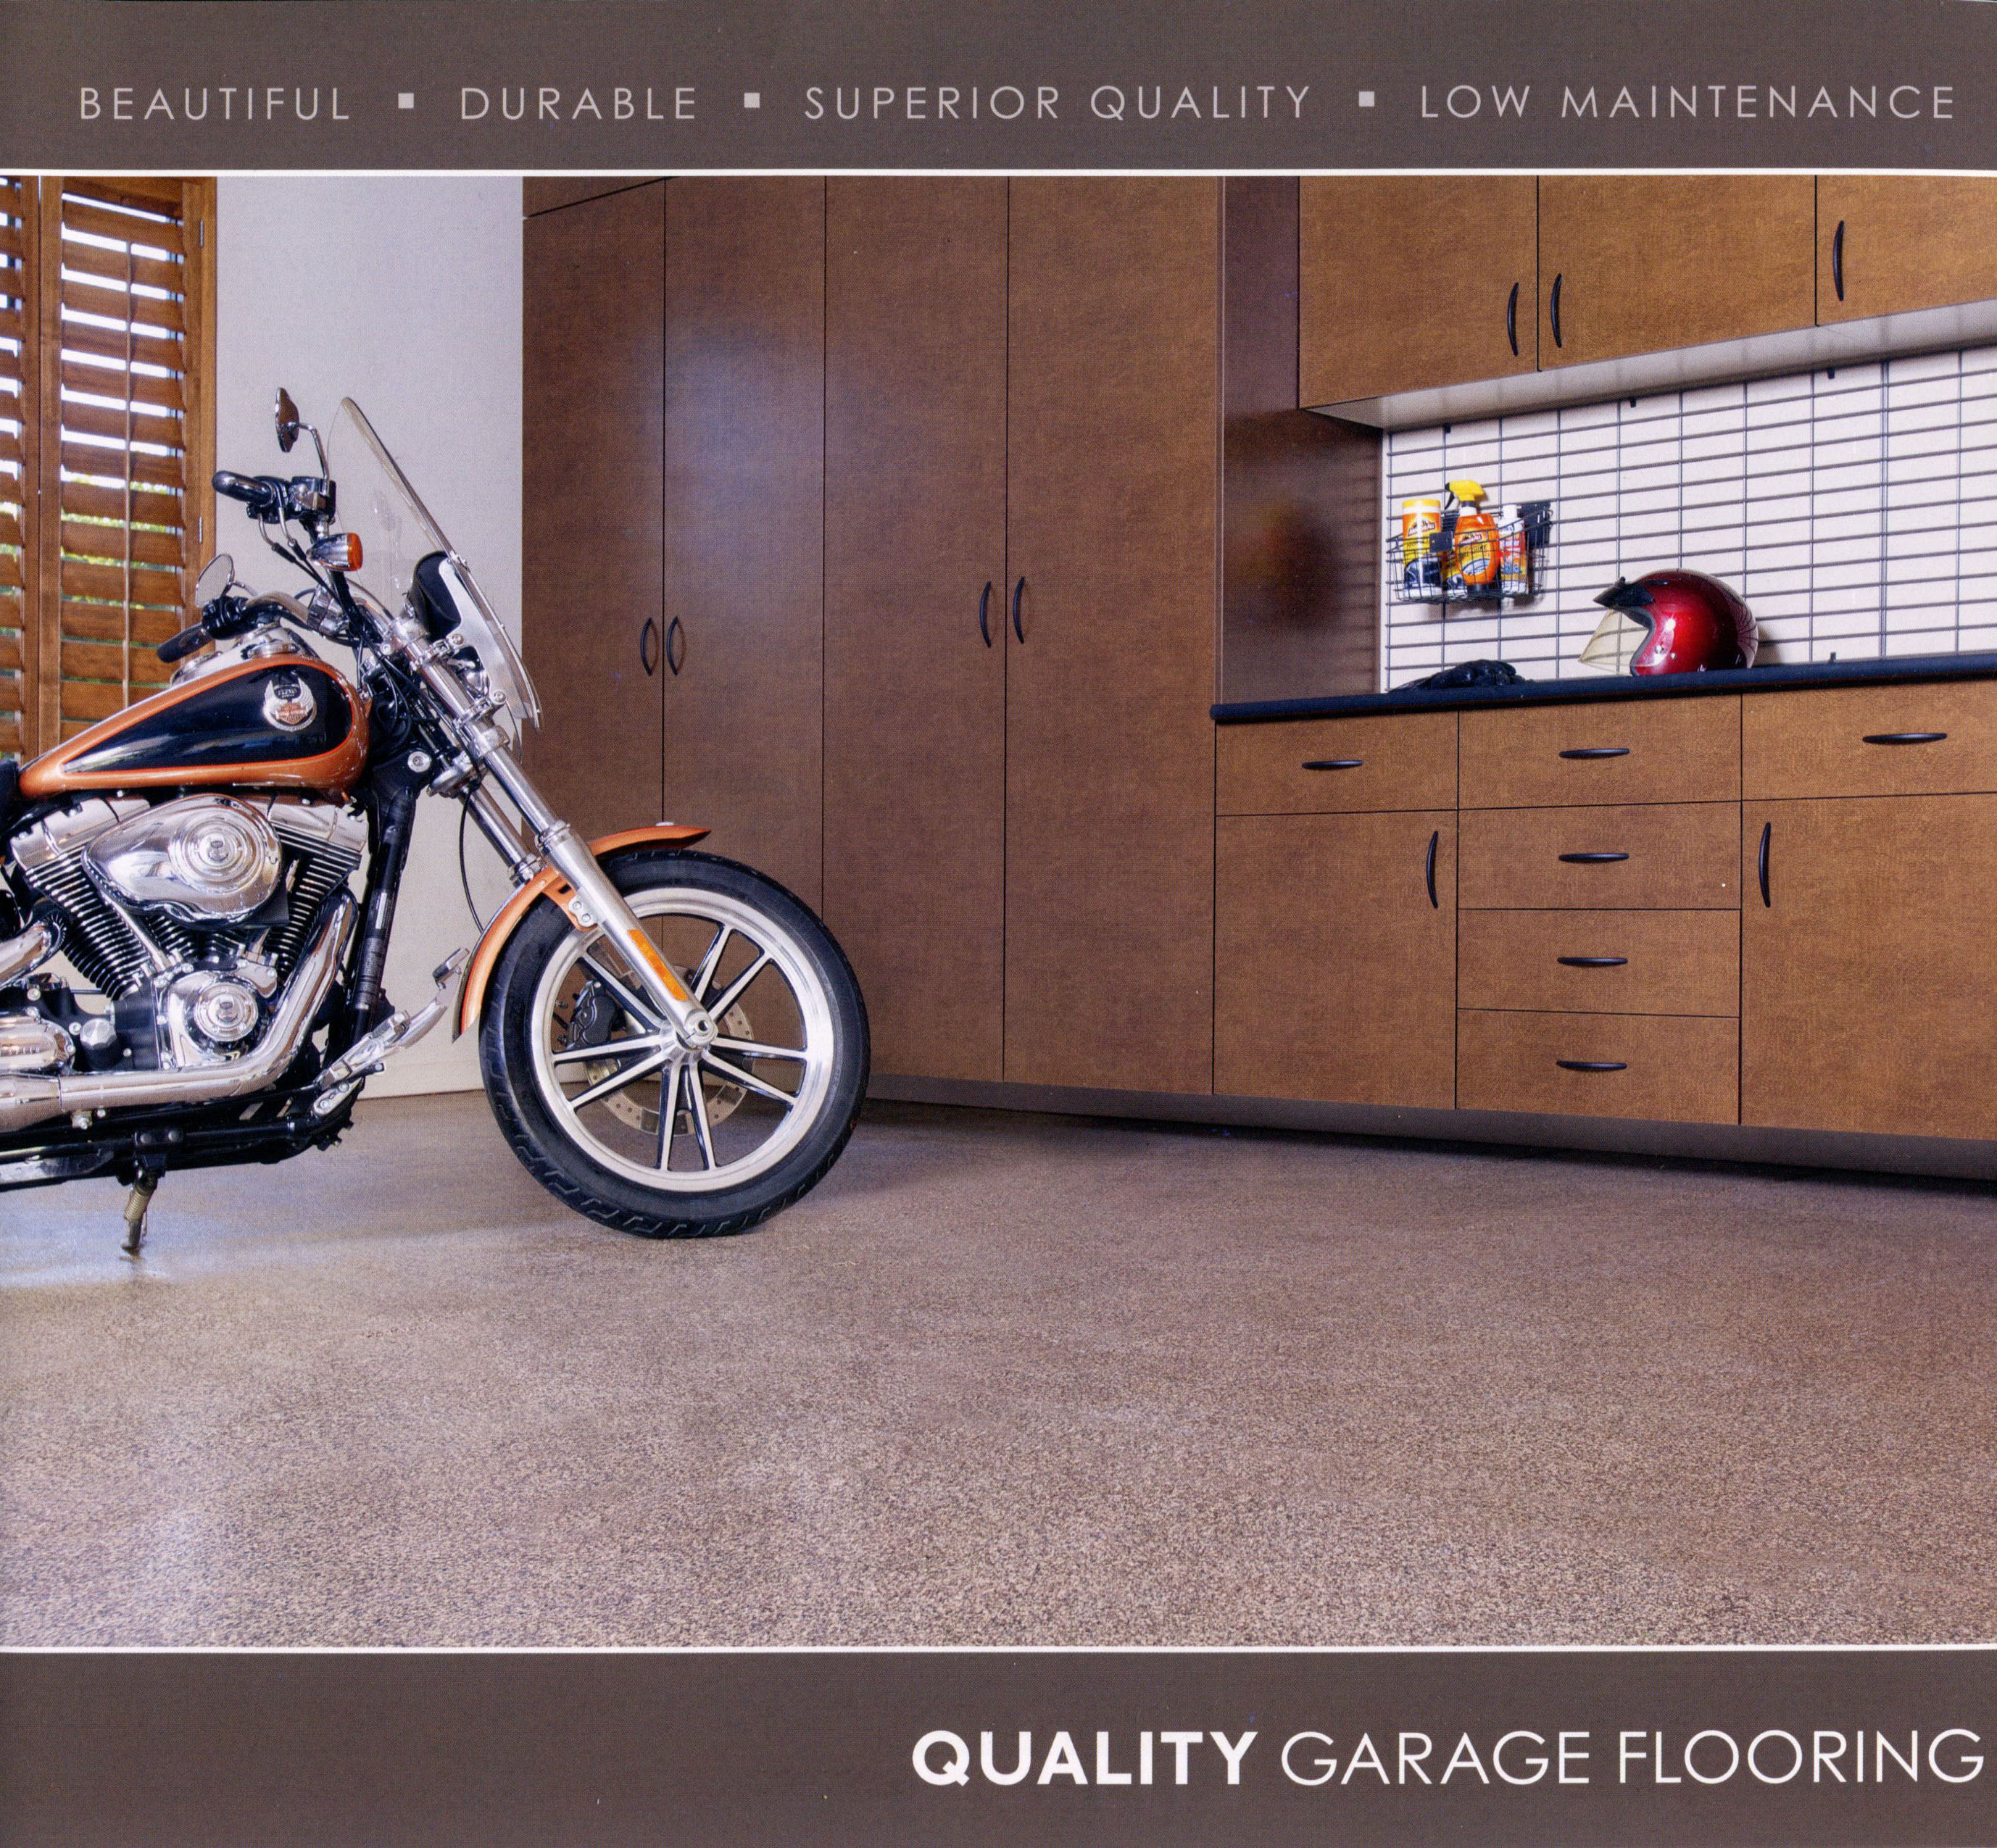 Quality Garage Flooring